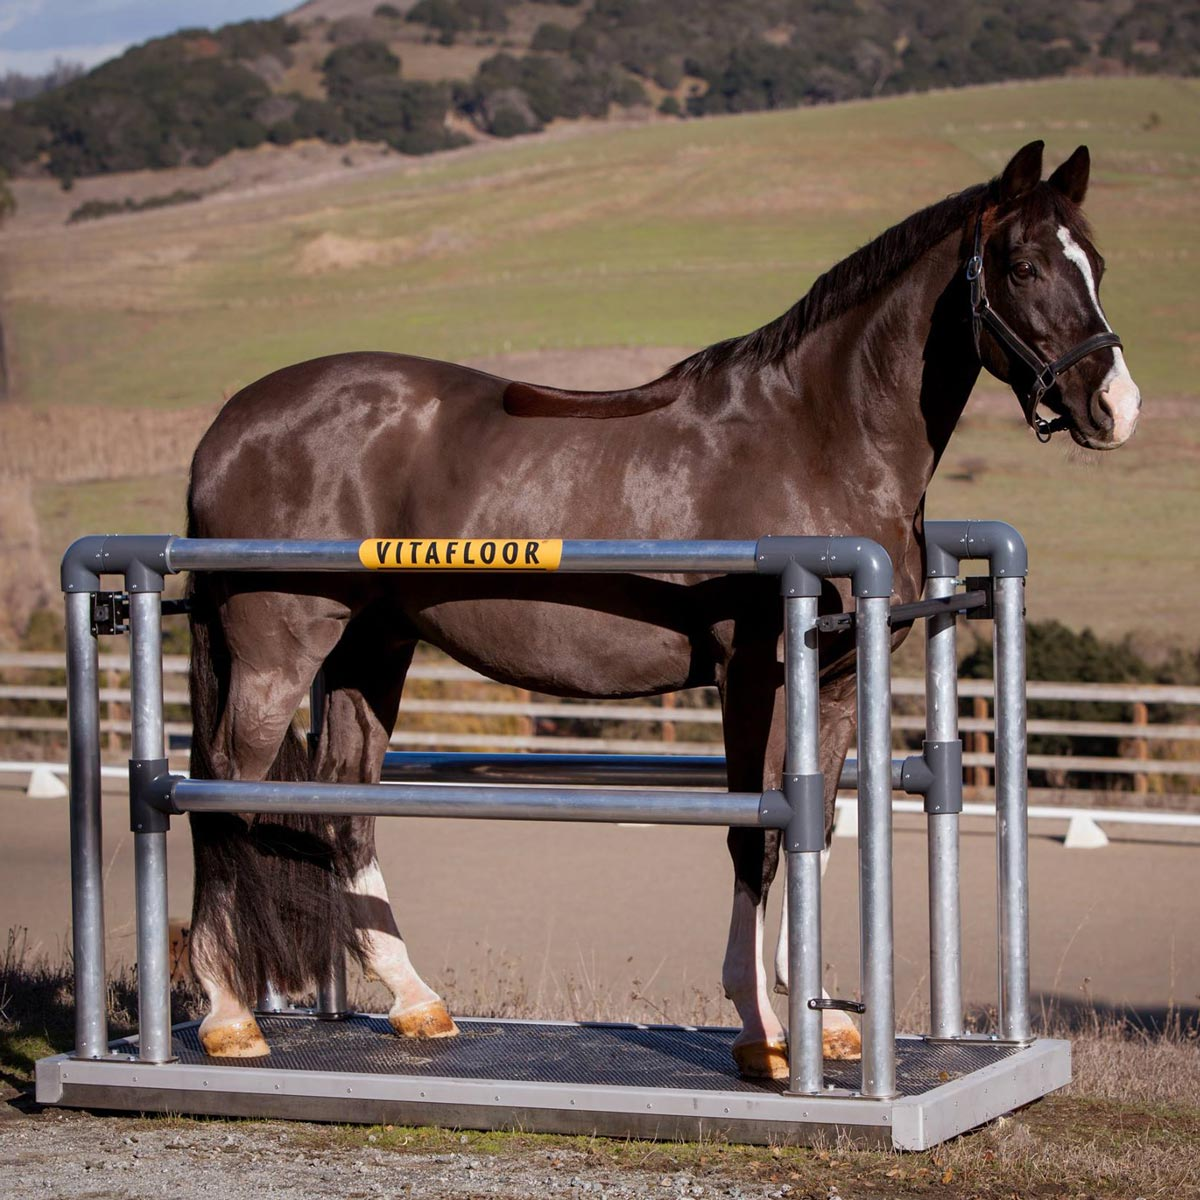 vitafloor equine vibration therapy system